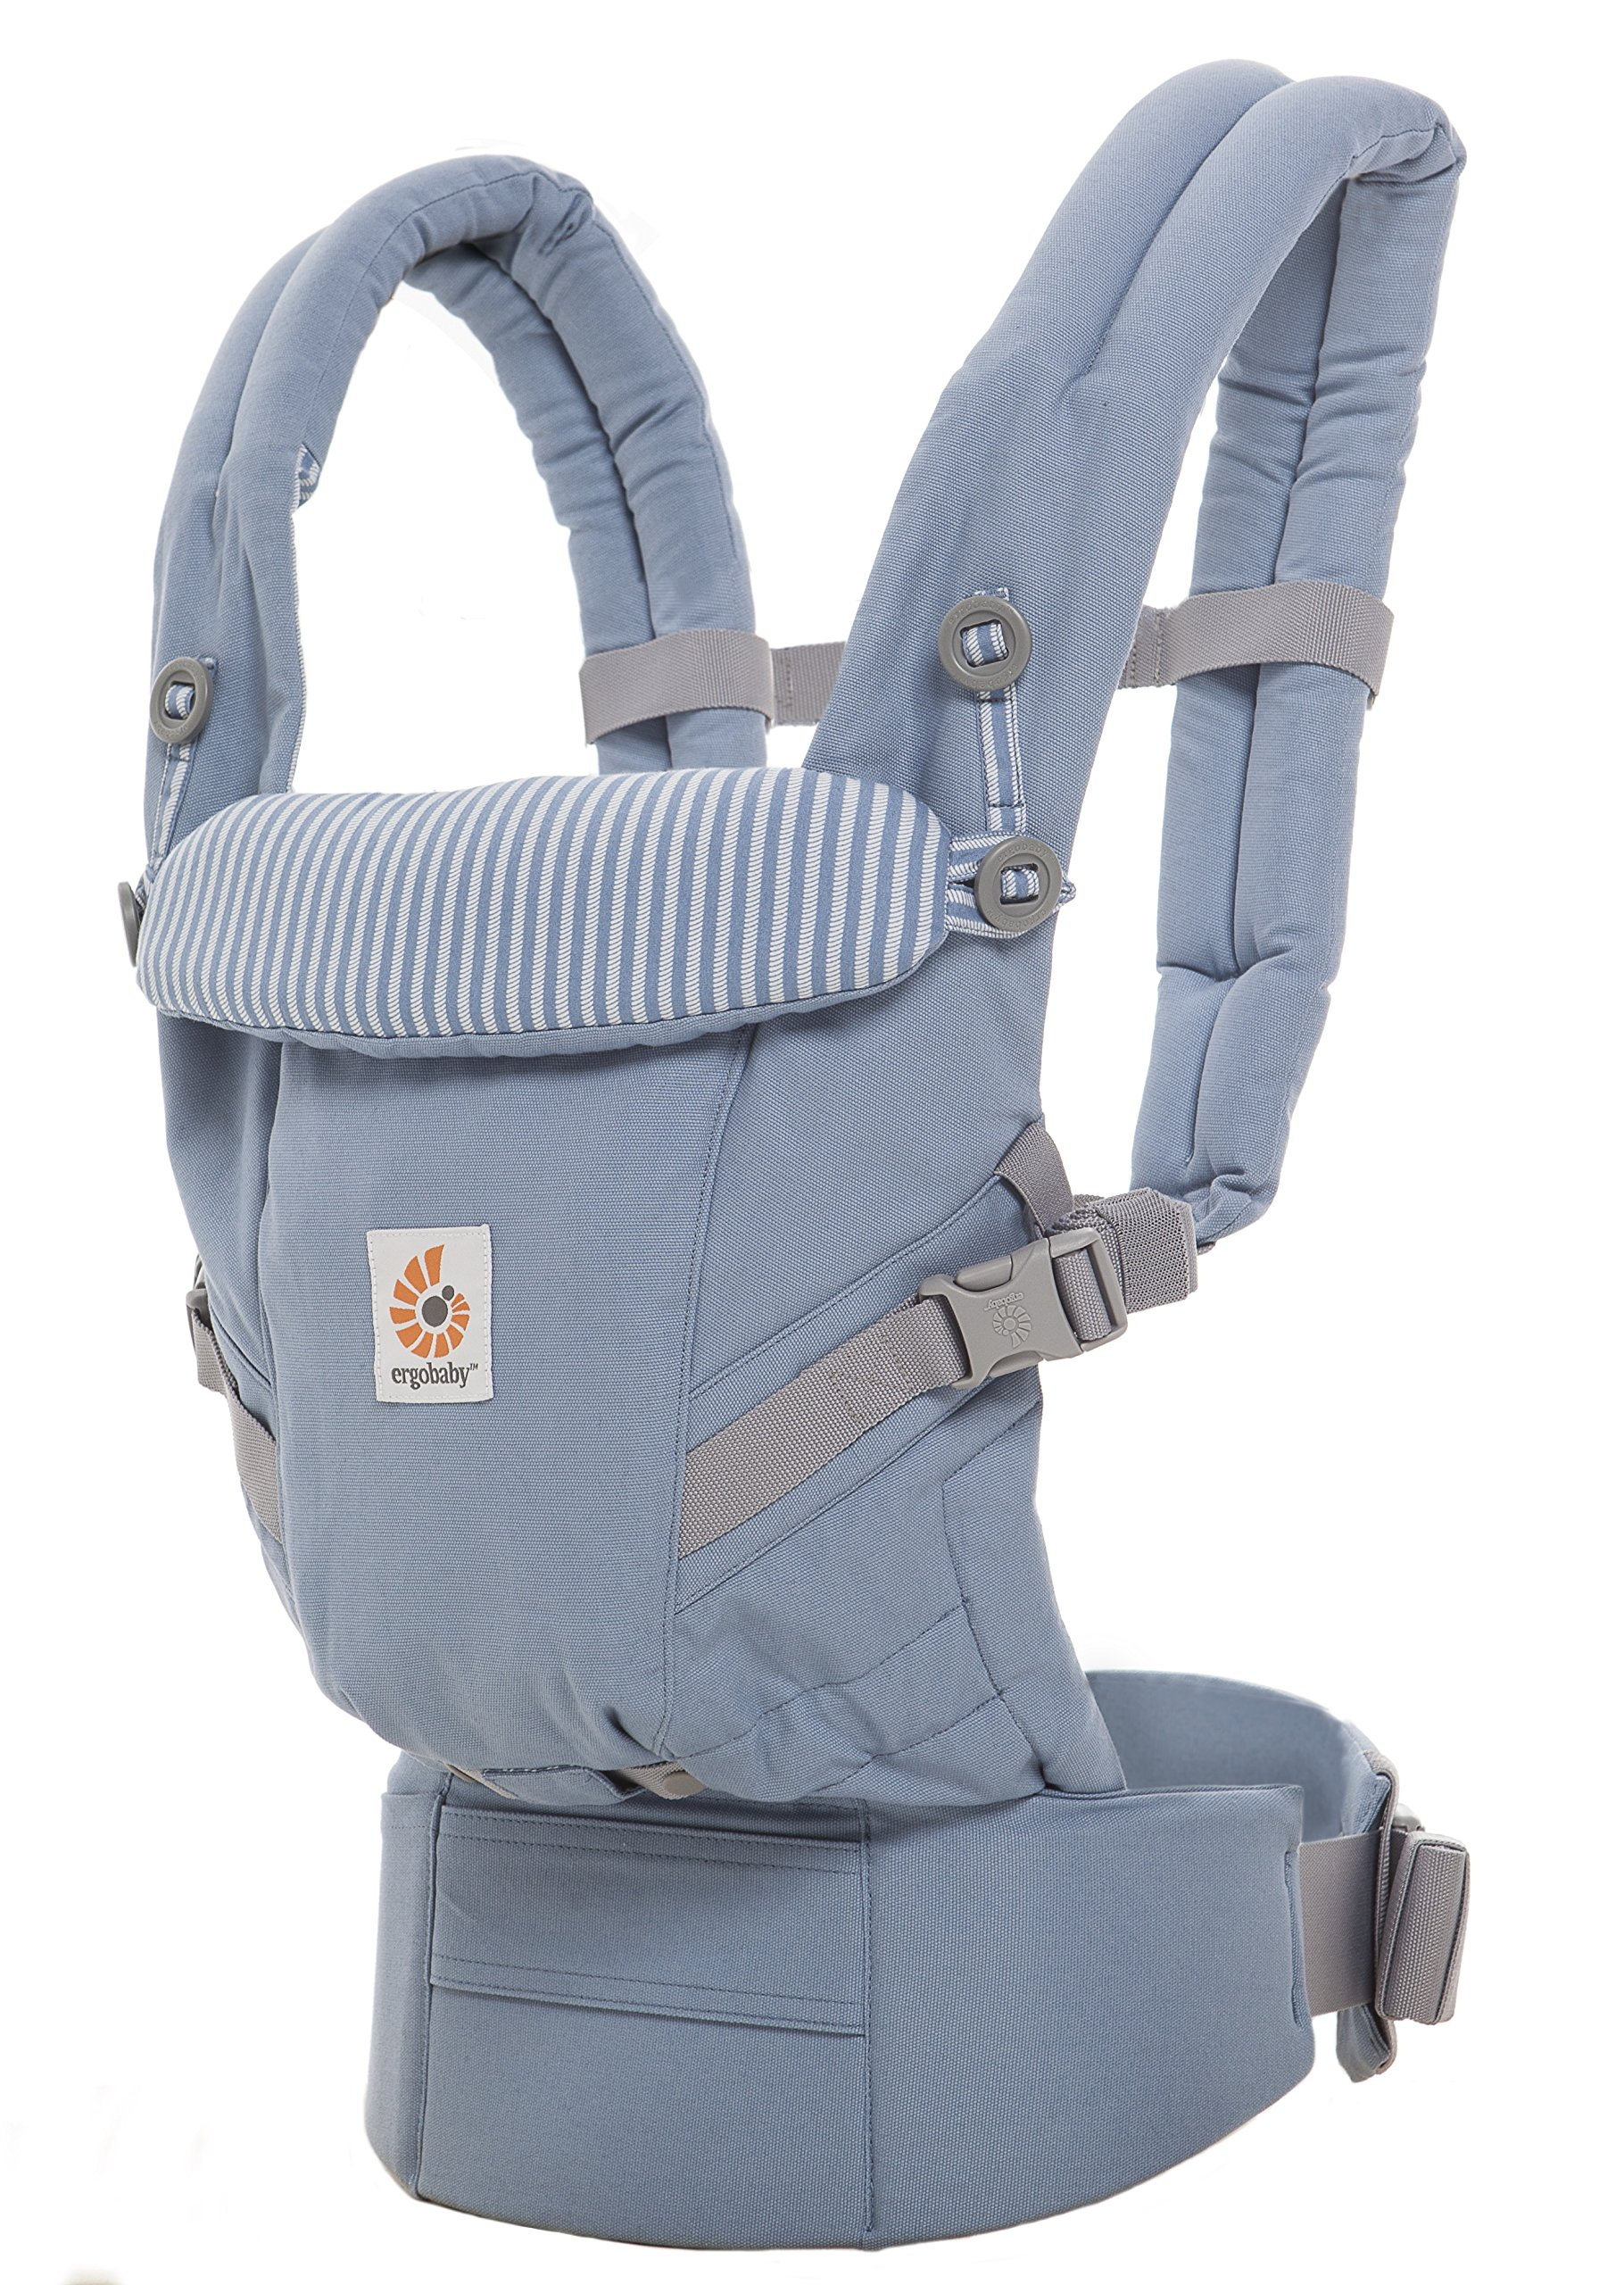 Ergobaby Baby Carrier for Newborn to Toddler up to 20kg, Azure Blue 3-Position Ergonomic Child Carriers Front Backpack  Ergobaby